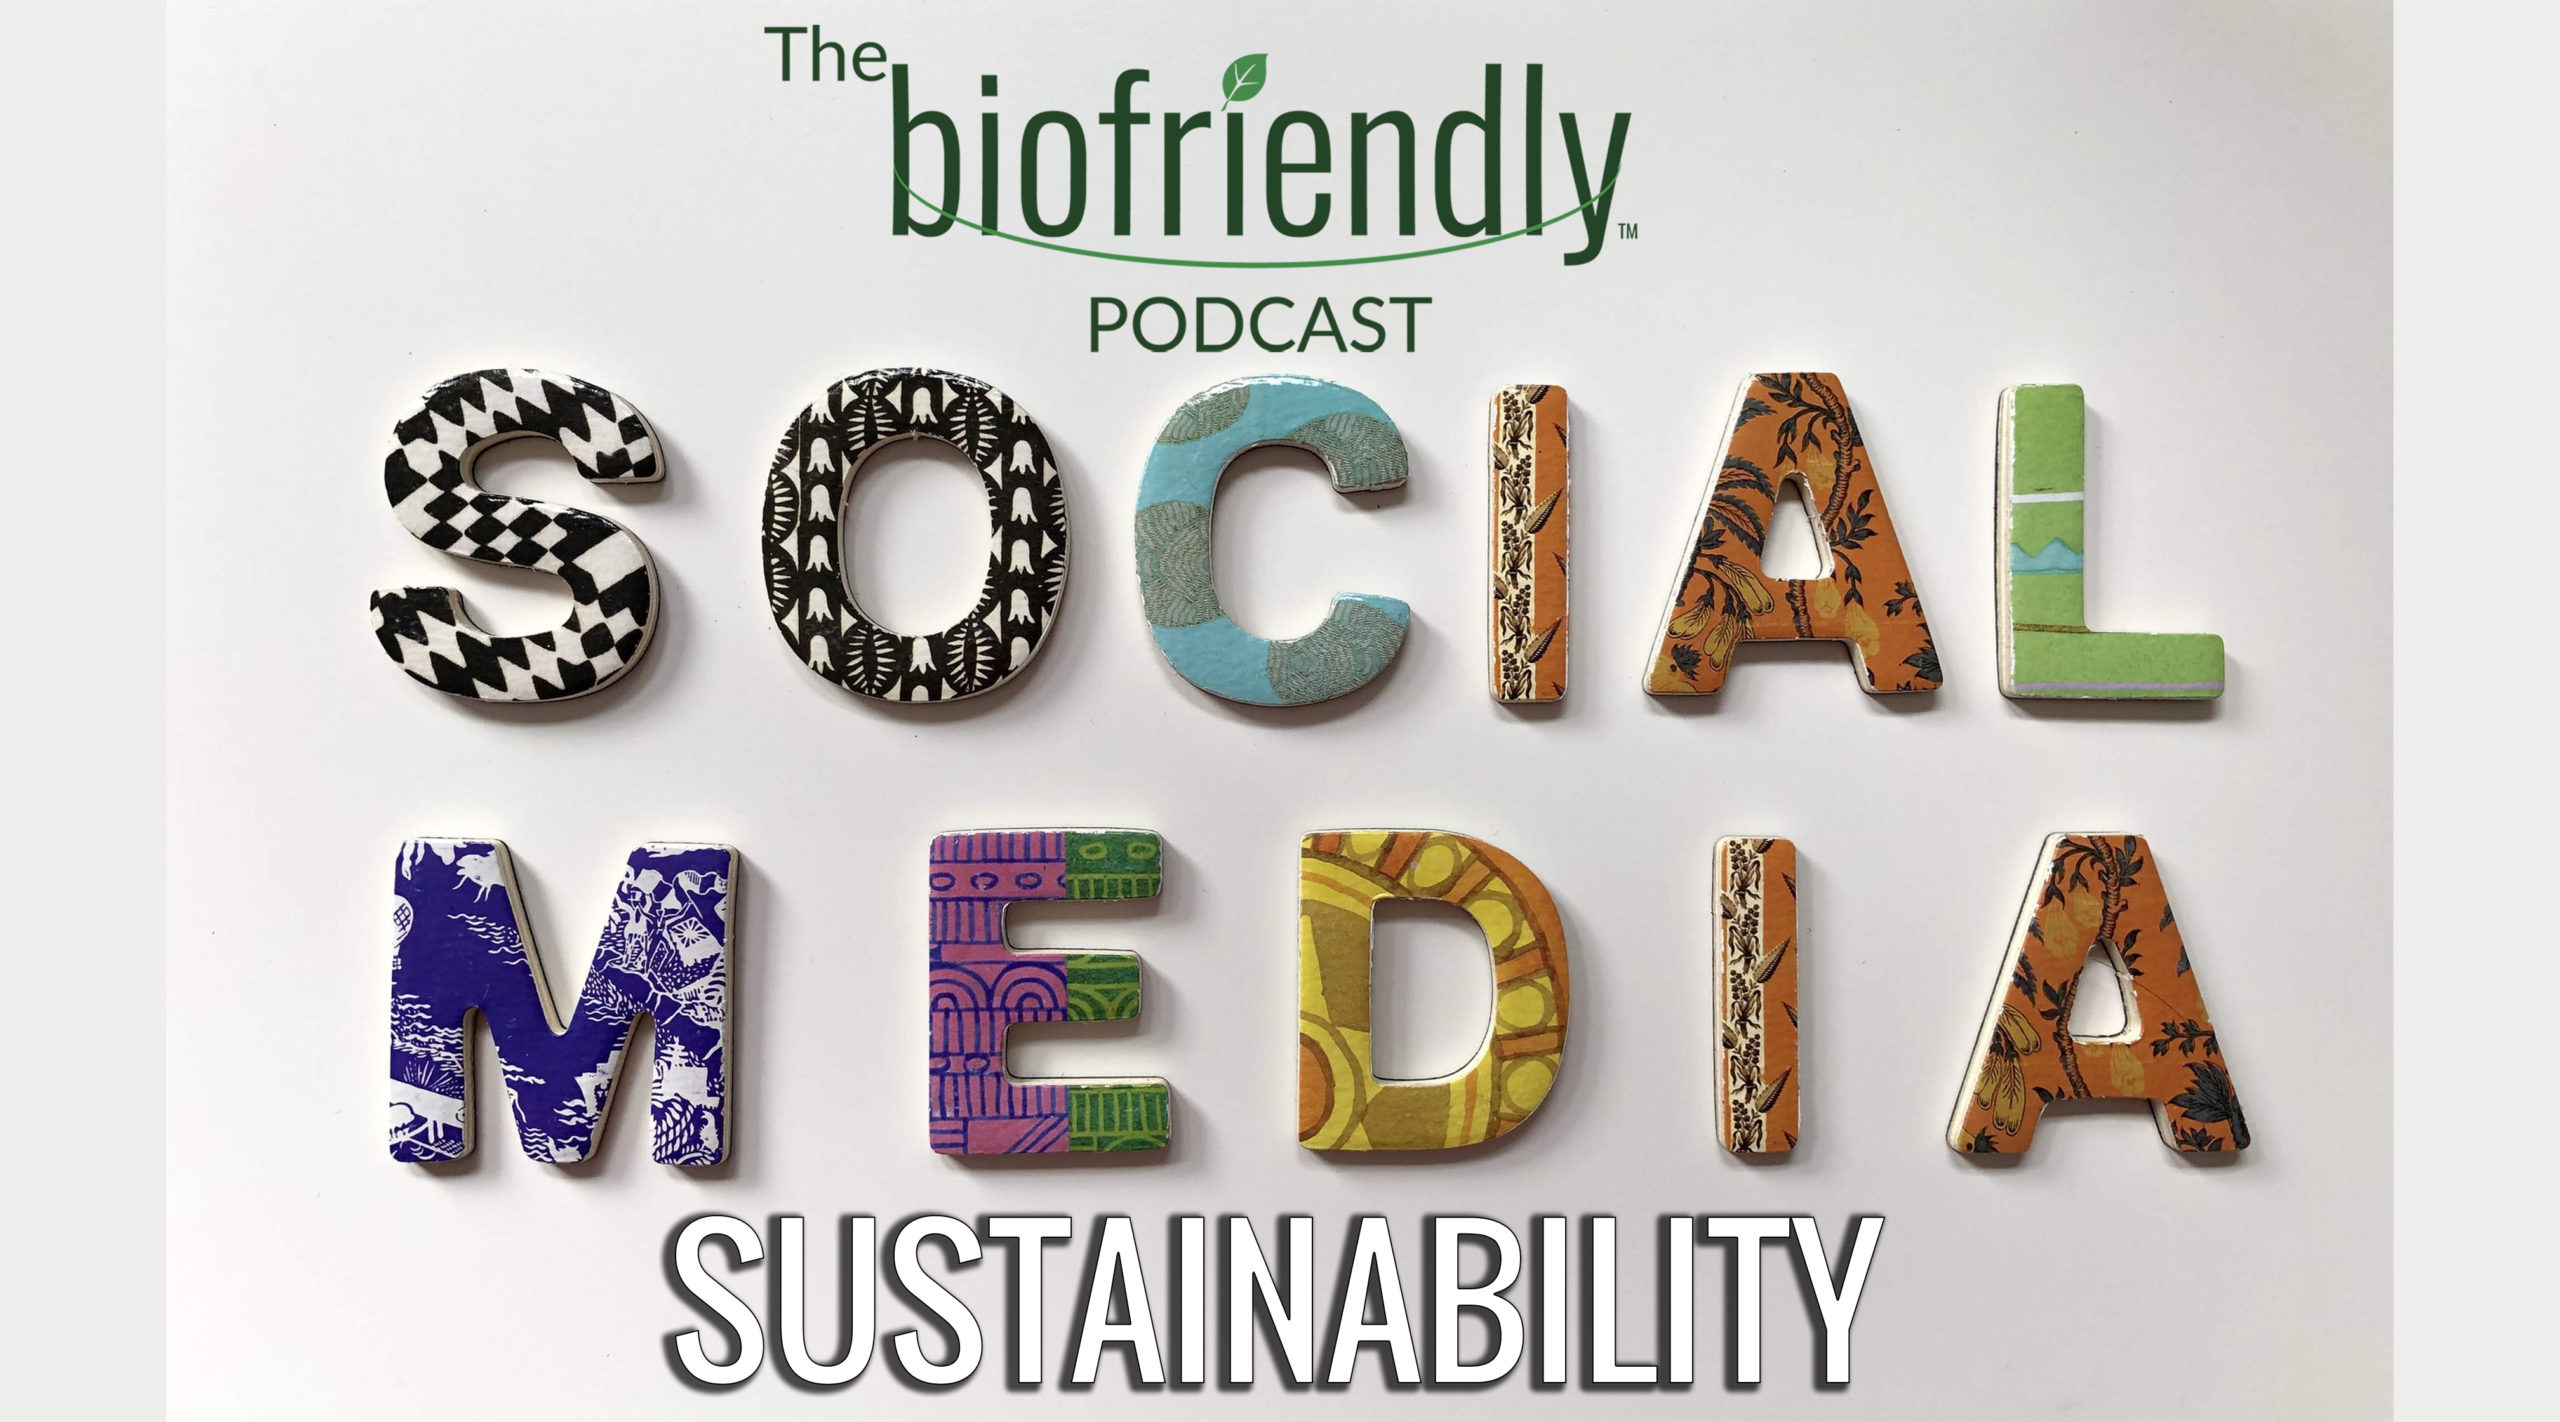 The Biofriendly Podcast - Episode 72 - Social Media Sustainability